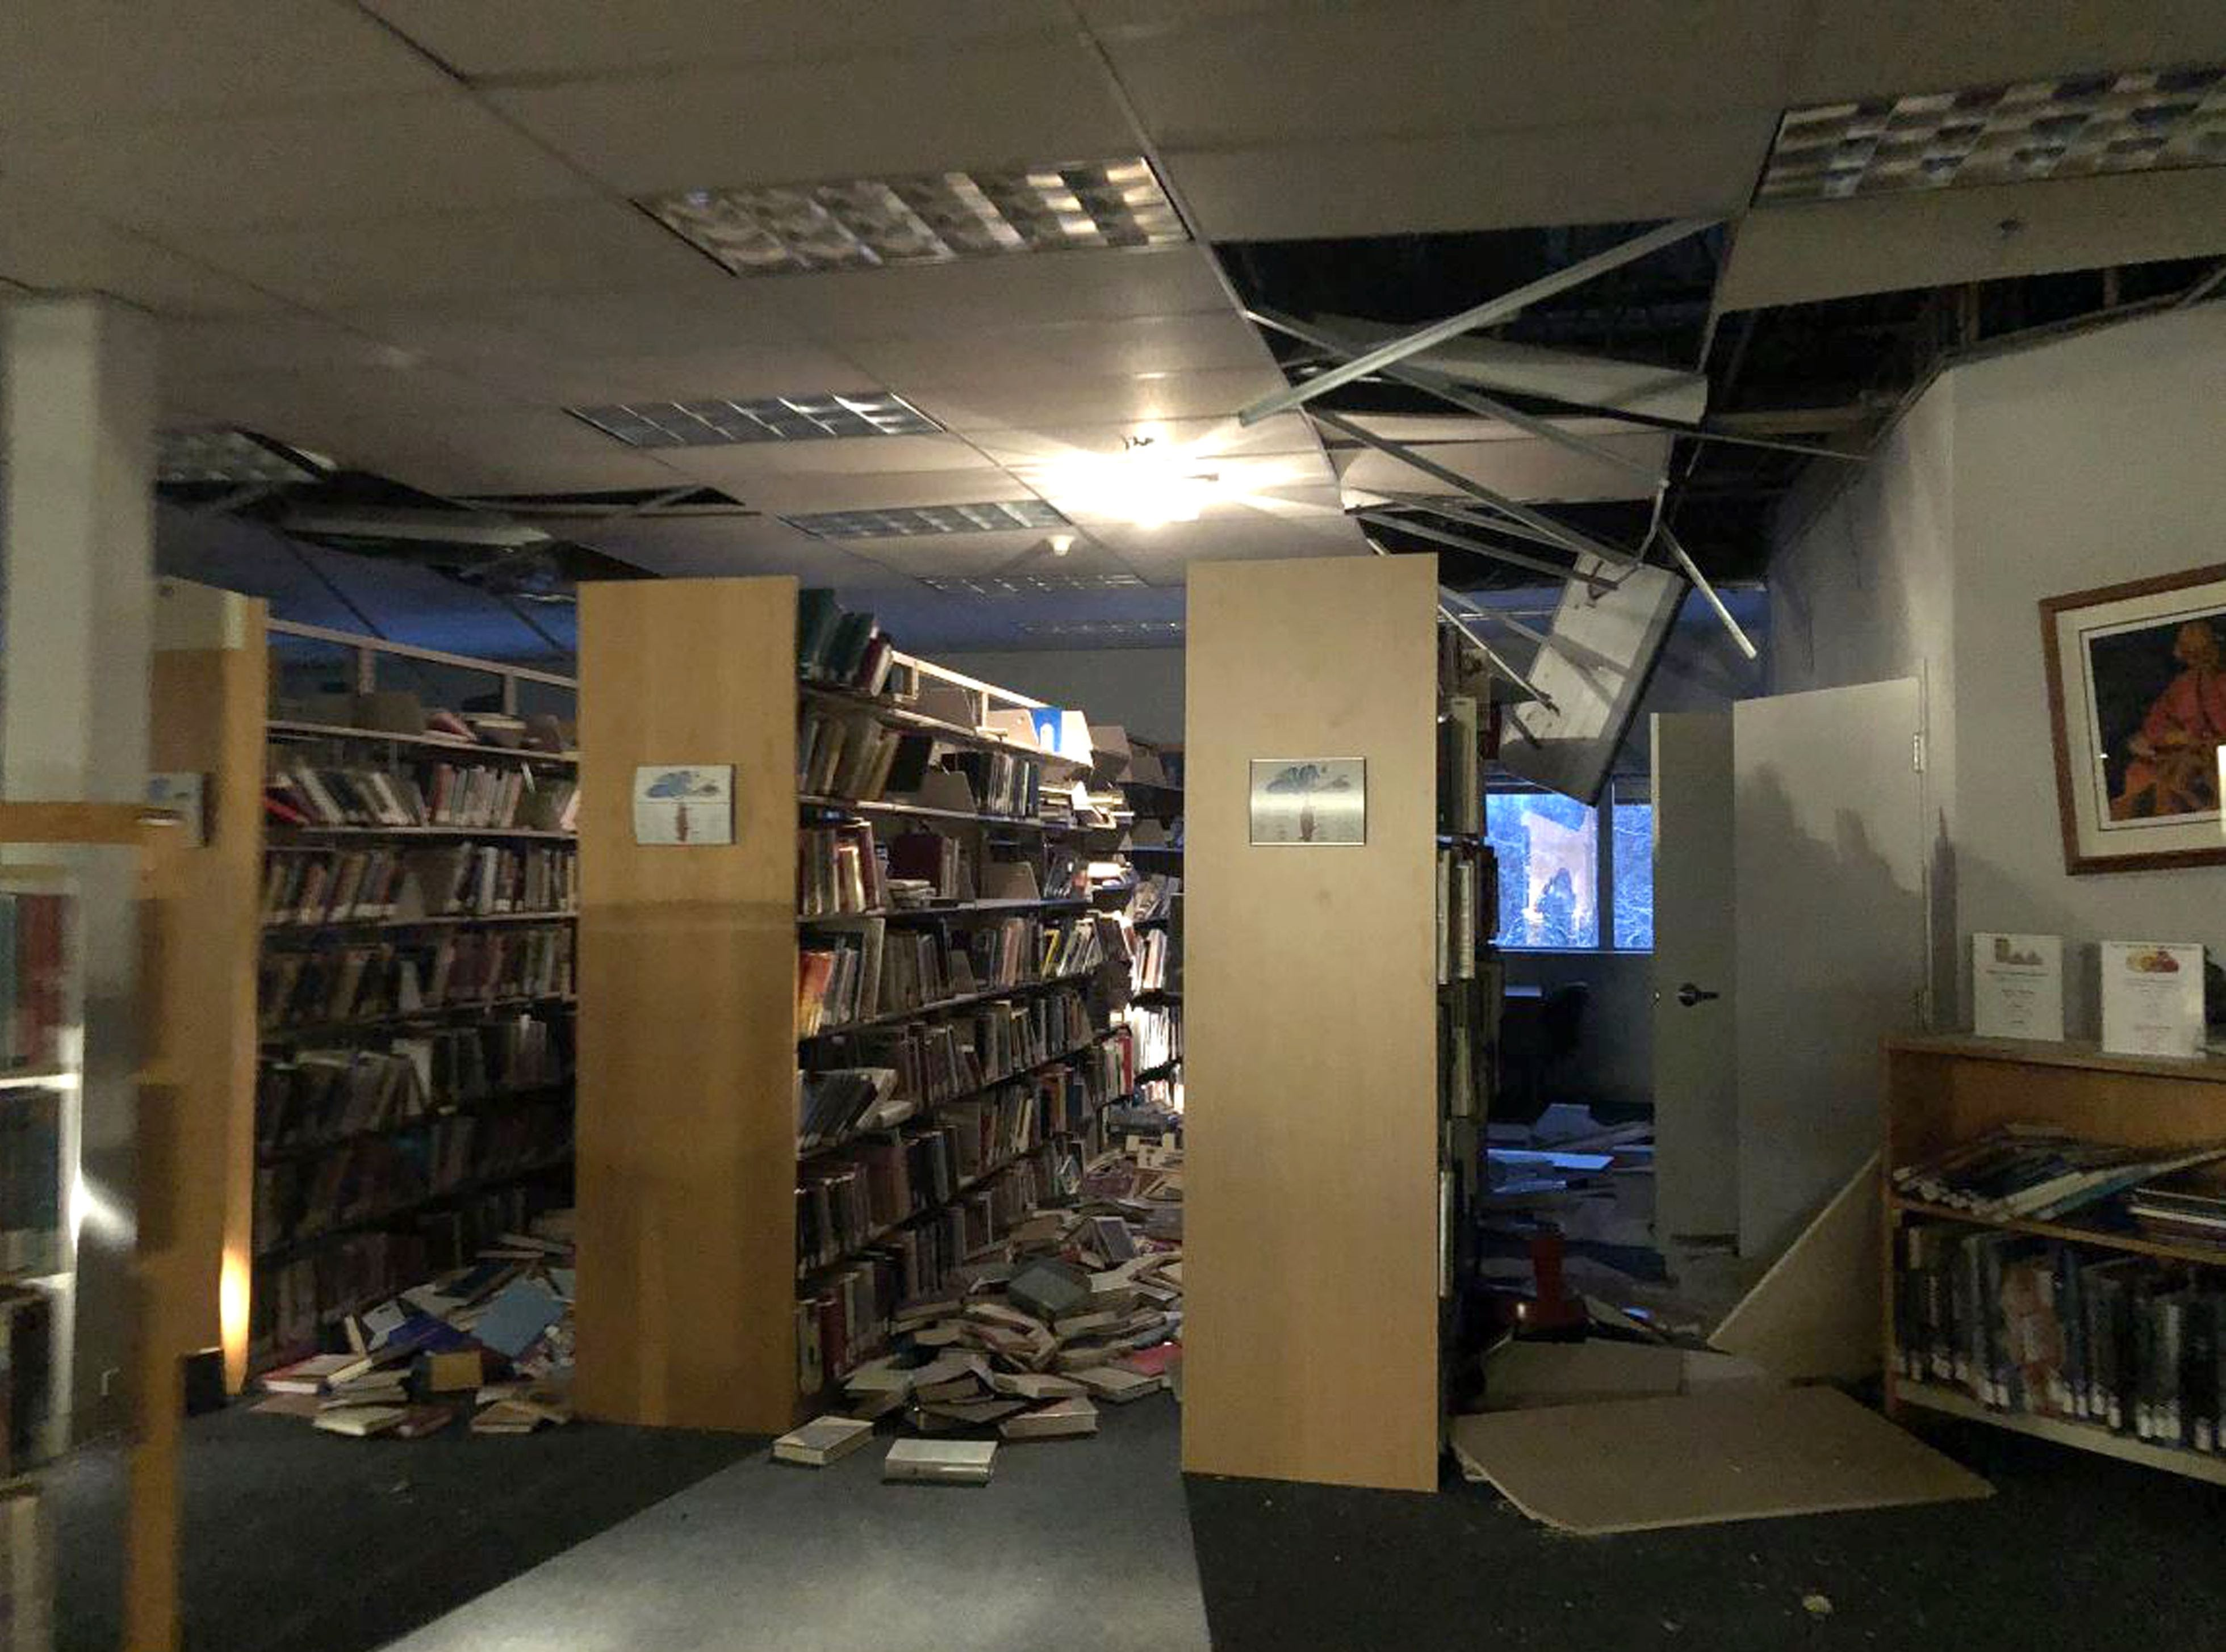 In this image courtesy of Dr. Holly A. Bell, books and ceiling tiles litter the floor at the The Mat-Su College library in Anchorage, Alaska, on Nov. 30, 2018, after a 7.0 magnitude earthquake.